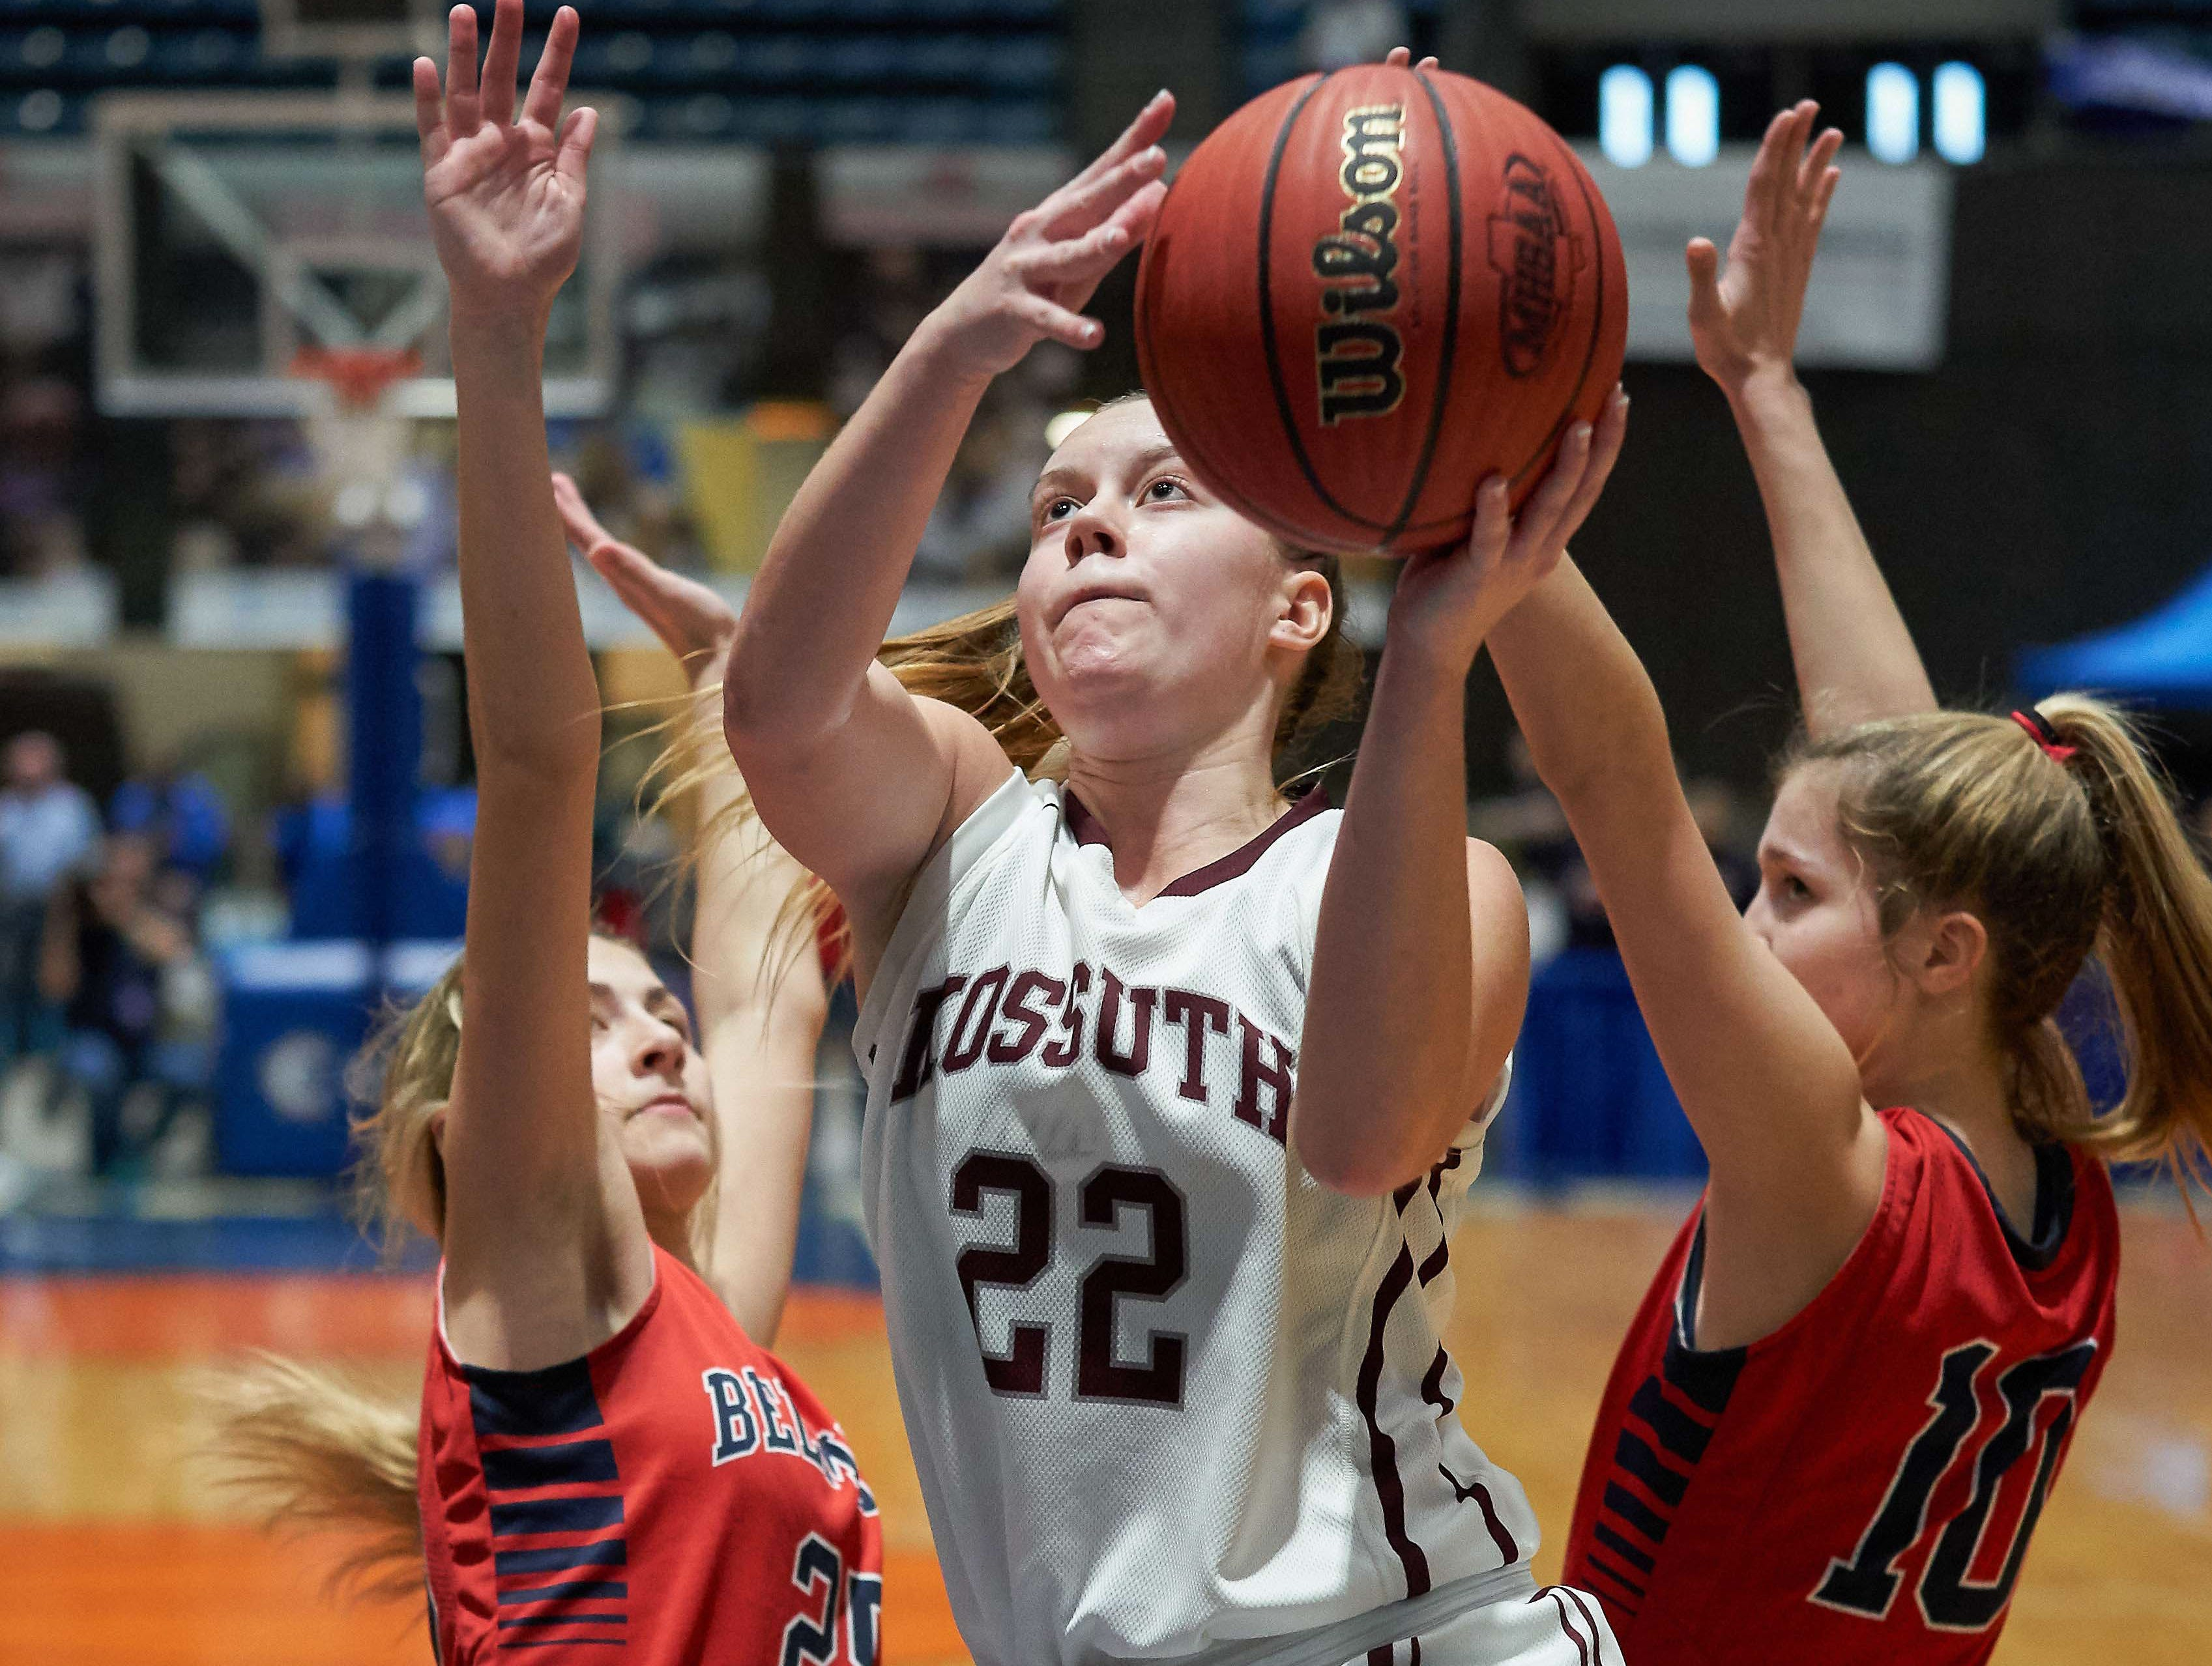 Kossuth's Morgan Hodum (22) shoots against Belmont during the MHSAA 3A Girls Basketball Championship Finals held at the Mississippi Coliseum in Jackson, MS, Saturday March 9th, 2019.(Bob Smith)